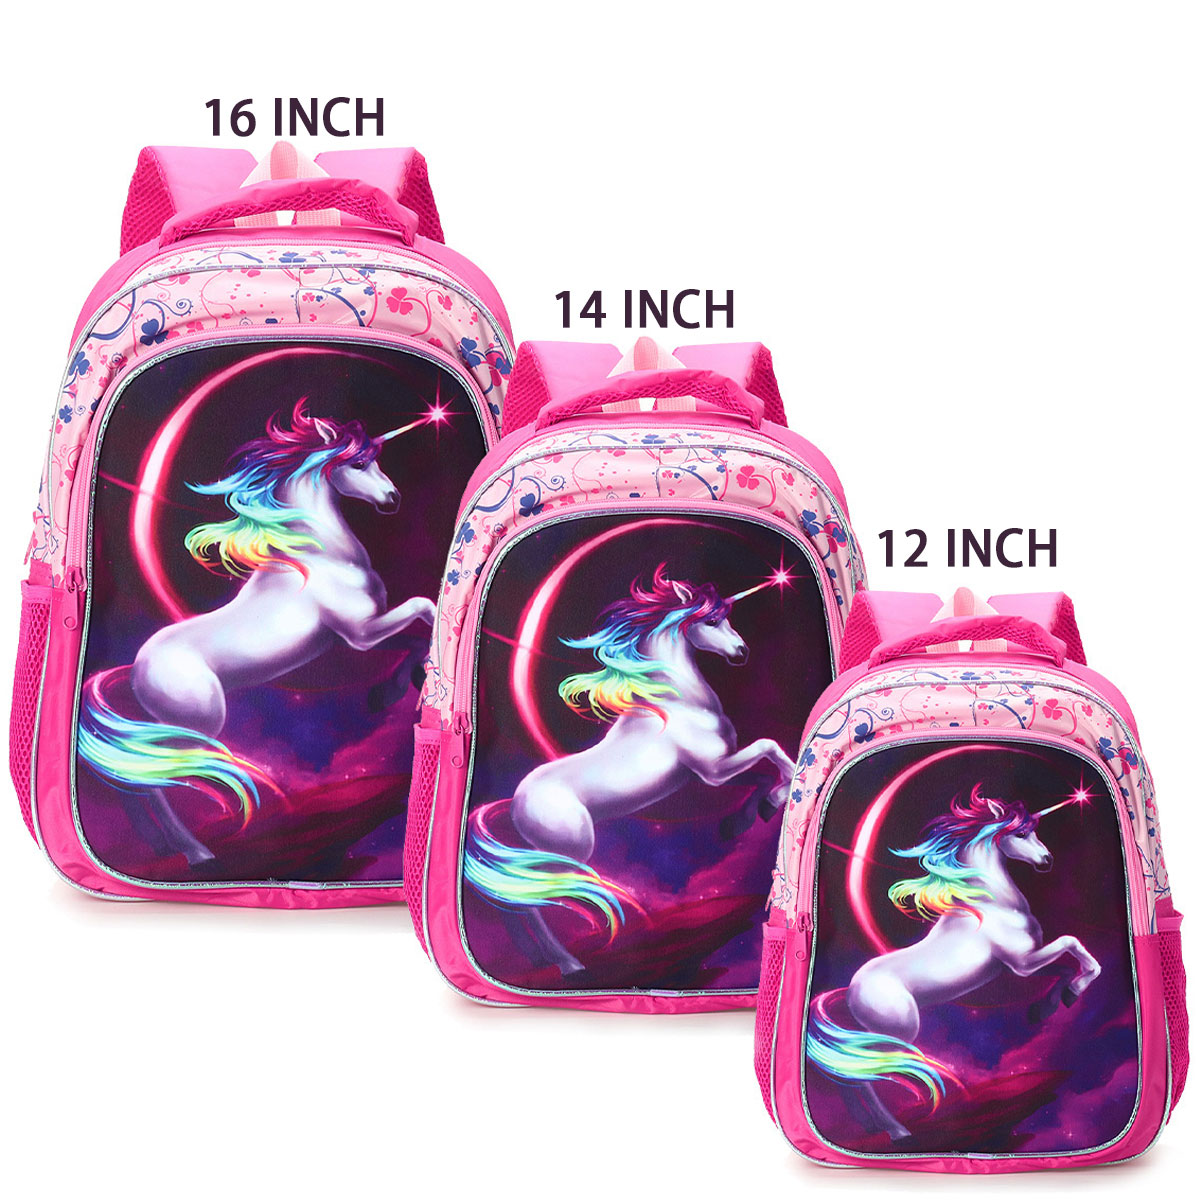 Fashion Backpack 12/14/16 Inch Horse Design Kids Backpack Girls School Book Bag Travel Accessories Polyester Backpack Gifts